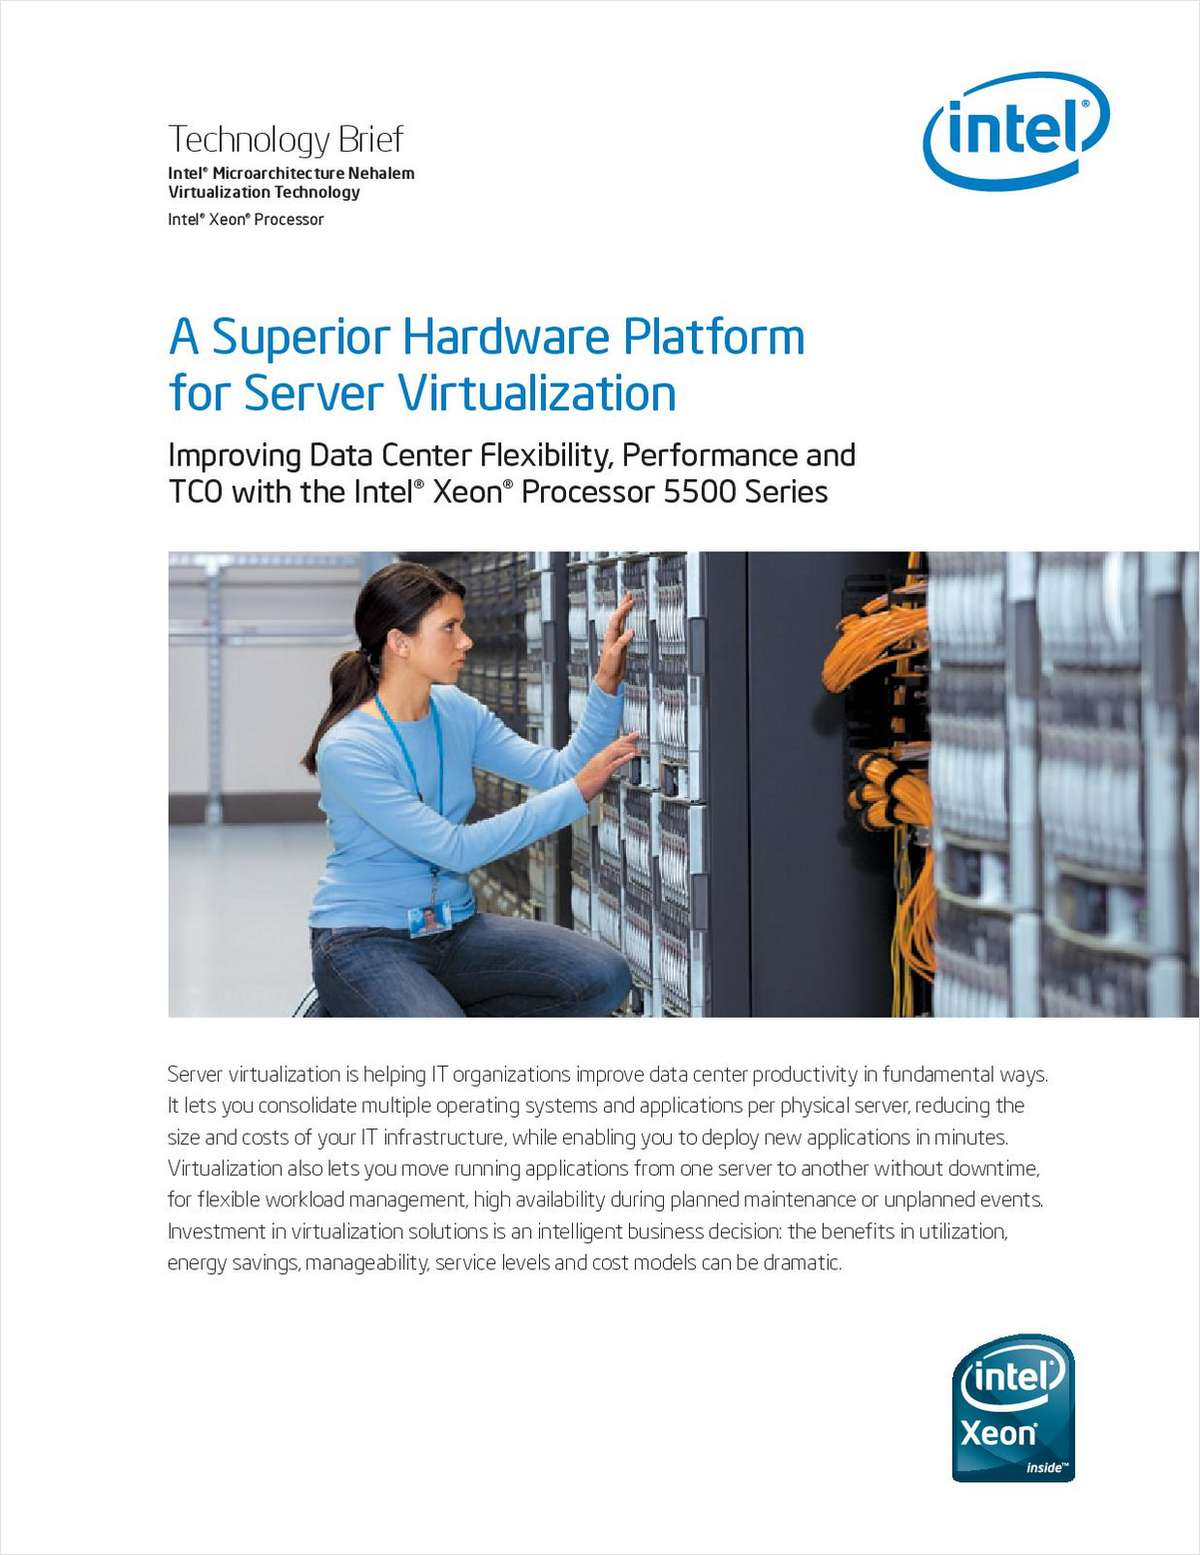 A Superior Hardware Platform for Server Virtualization: Improving Data Center Flexibility, Performance and TCO with the Intel® Xeon® Processor 5500 Series